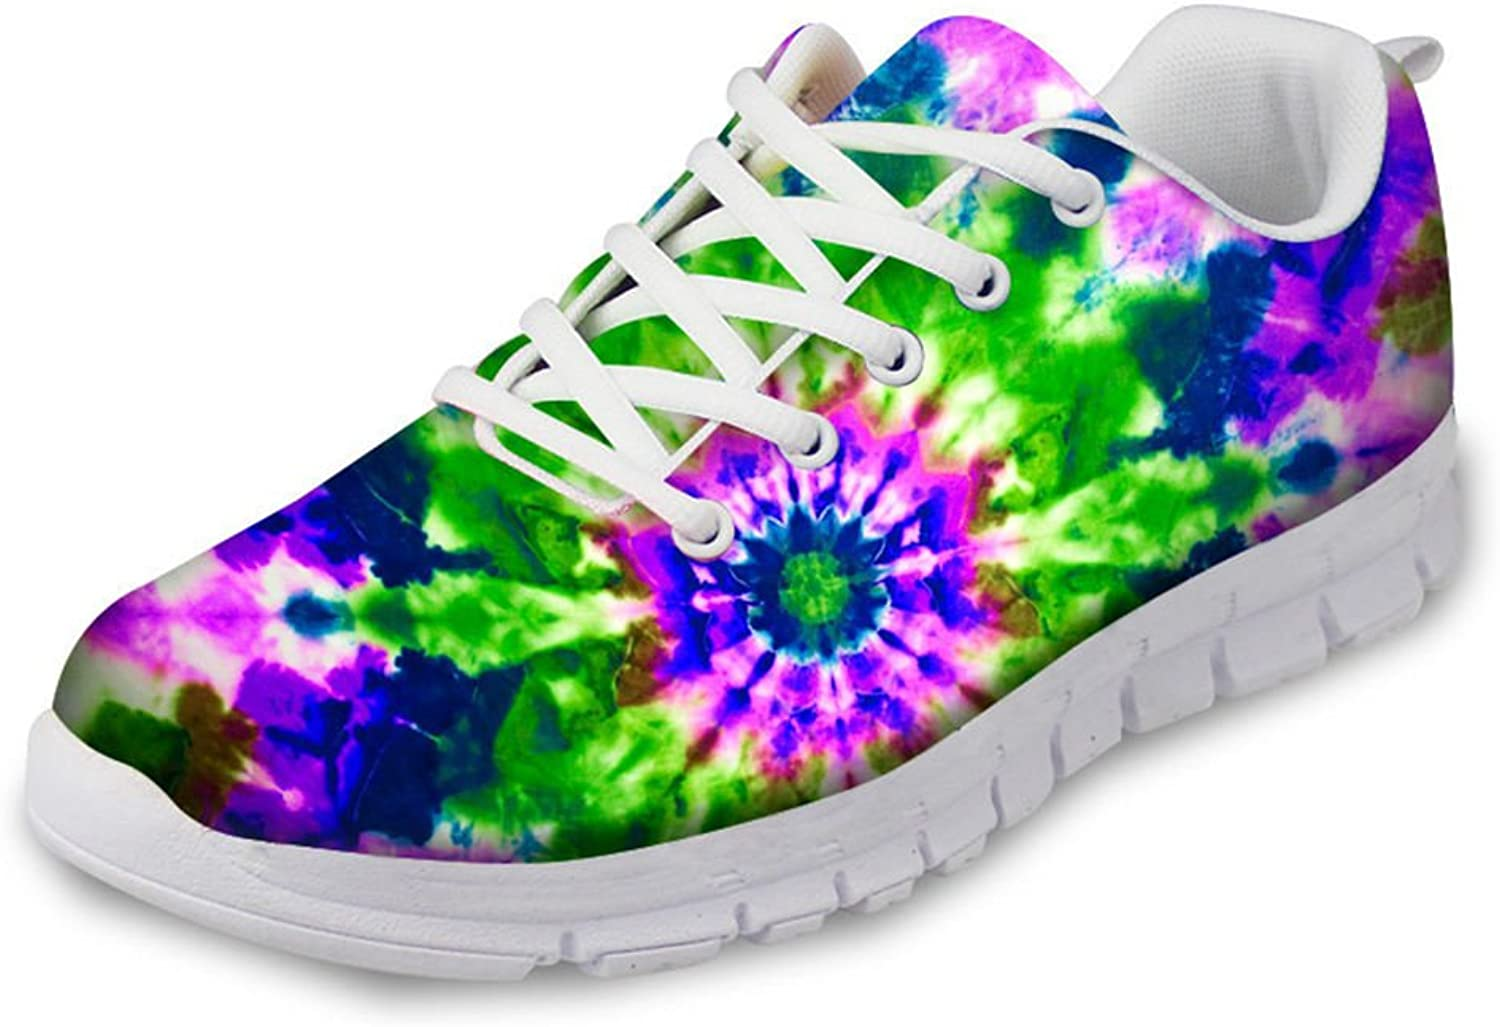 Advocator colorful Fashion Sneaker Casual Comfortable Athletic Walking Running shoes